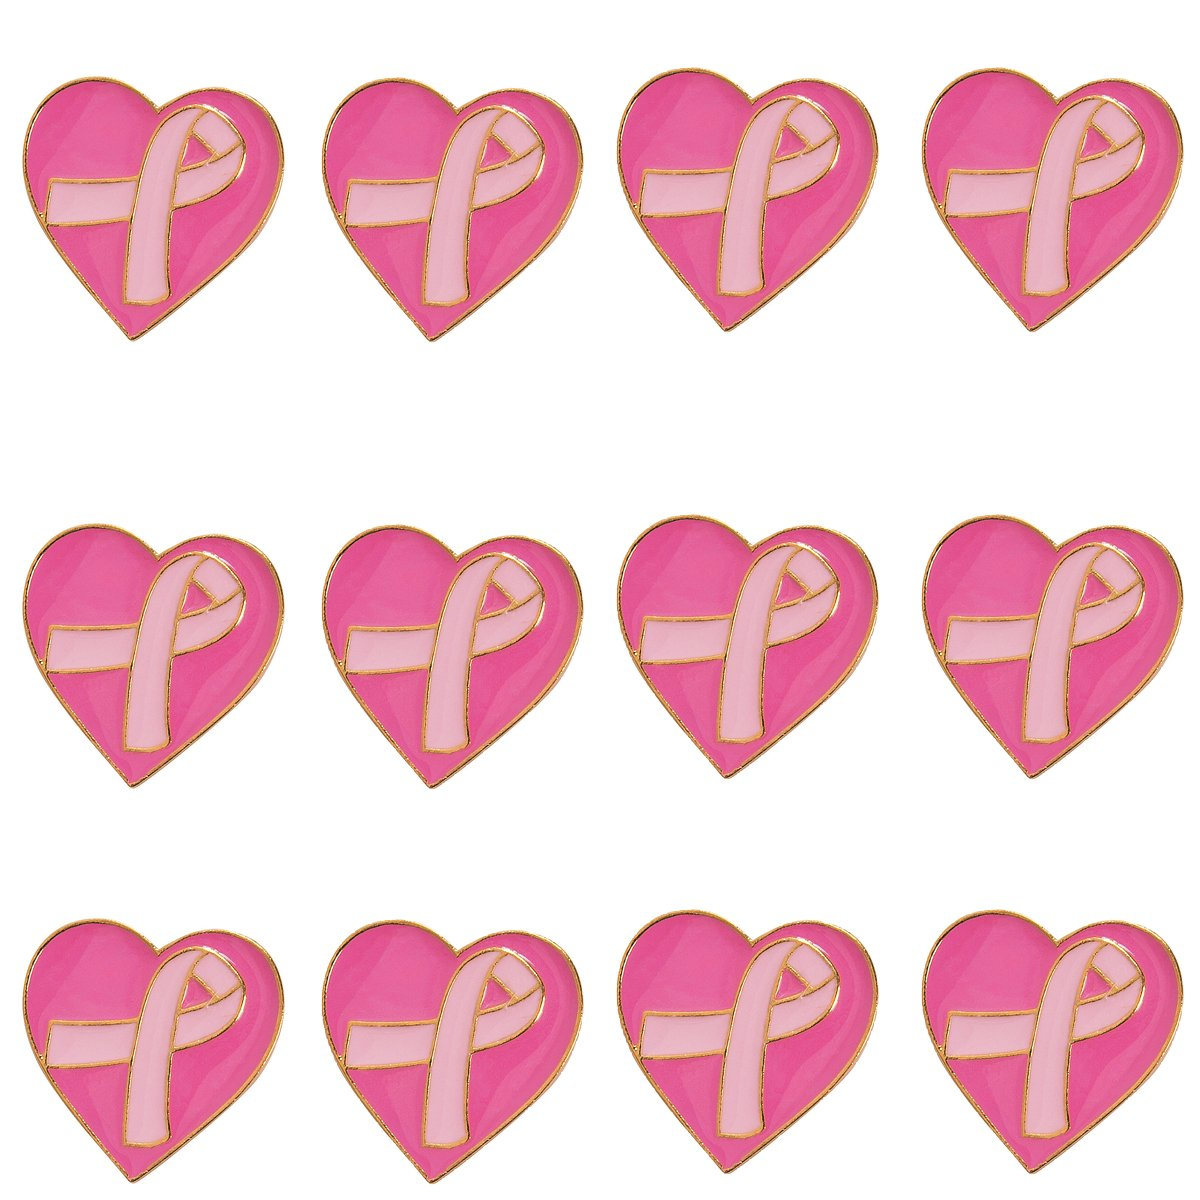 Pink Ribbon Breast Cancer Awareness Set - 12 Pink Camouflage Bracelets + 12 Message Pens + 12 Pink Ribbon Heart Pins + 12 Dog Tag Necklaces by Pink Ribbon Awareness (Image #3)